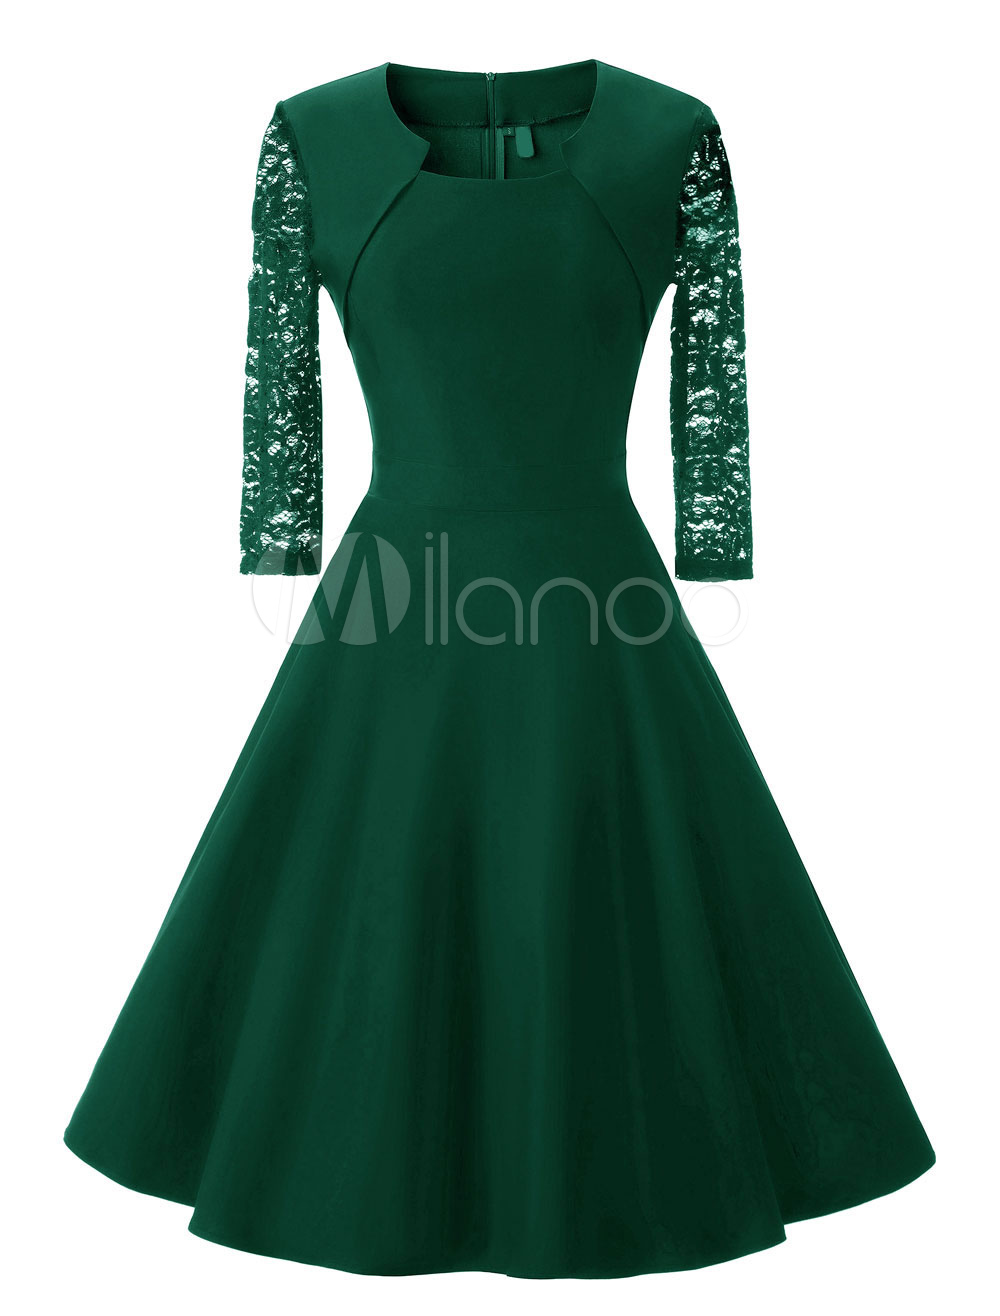 Green Vintage Dress Lace Semi Sheer 3/4 Length Sleeve Pleated Dresses For Women (Women\\'s Clothing Vintage Dresses) photo